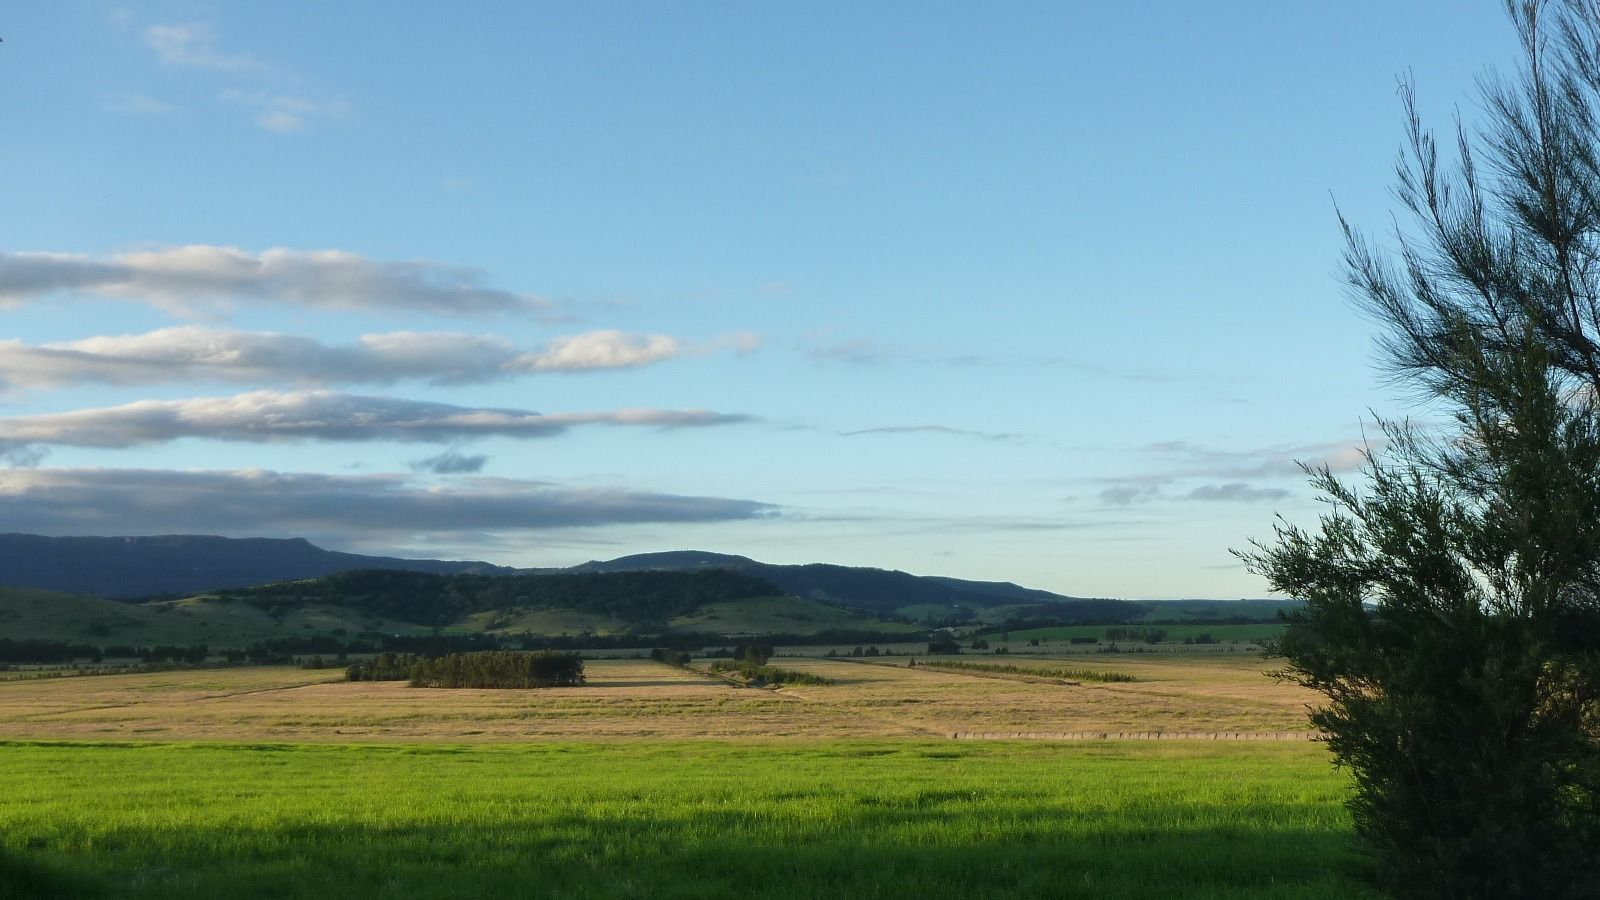 Rural landscape with rolling hills in the background banner image